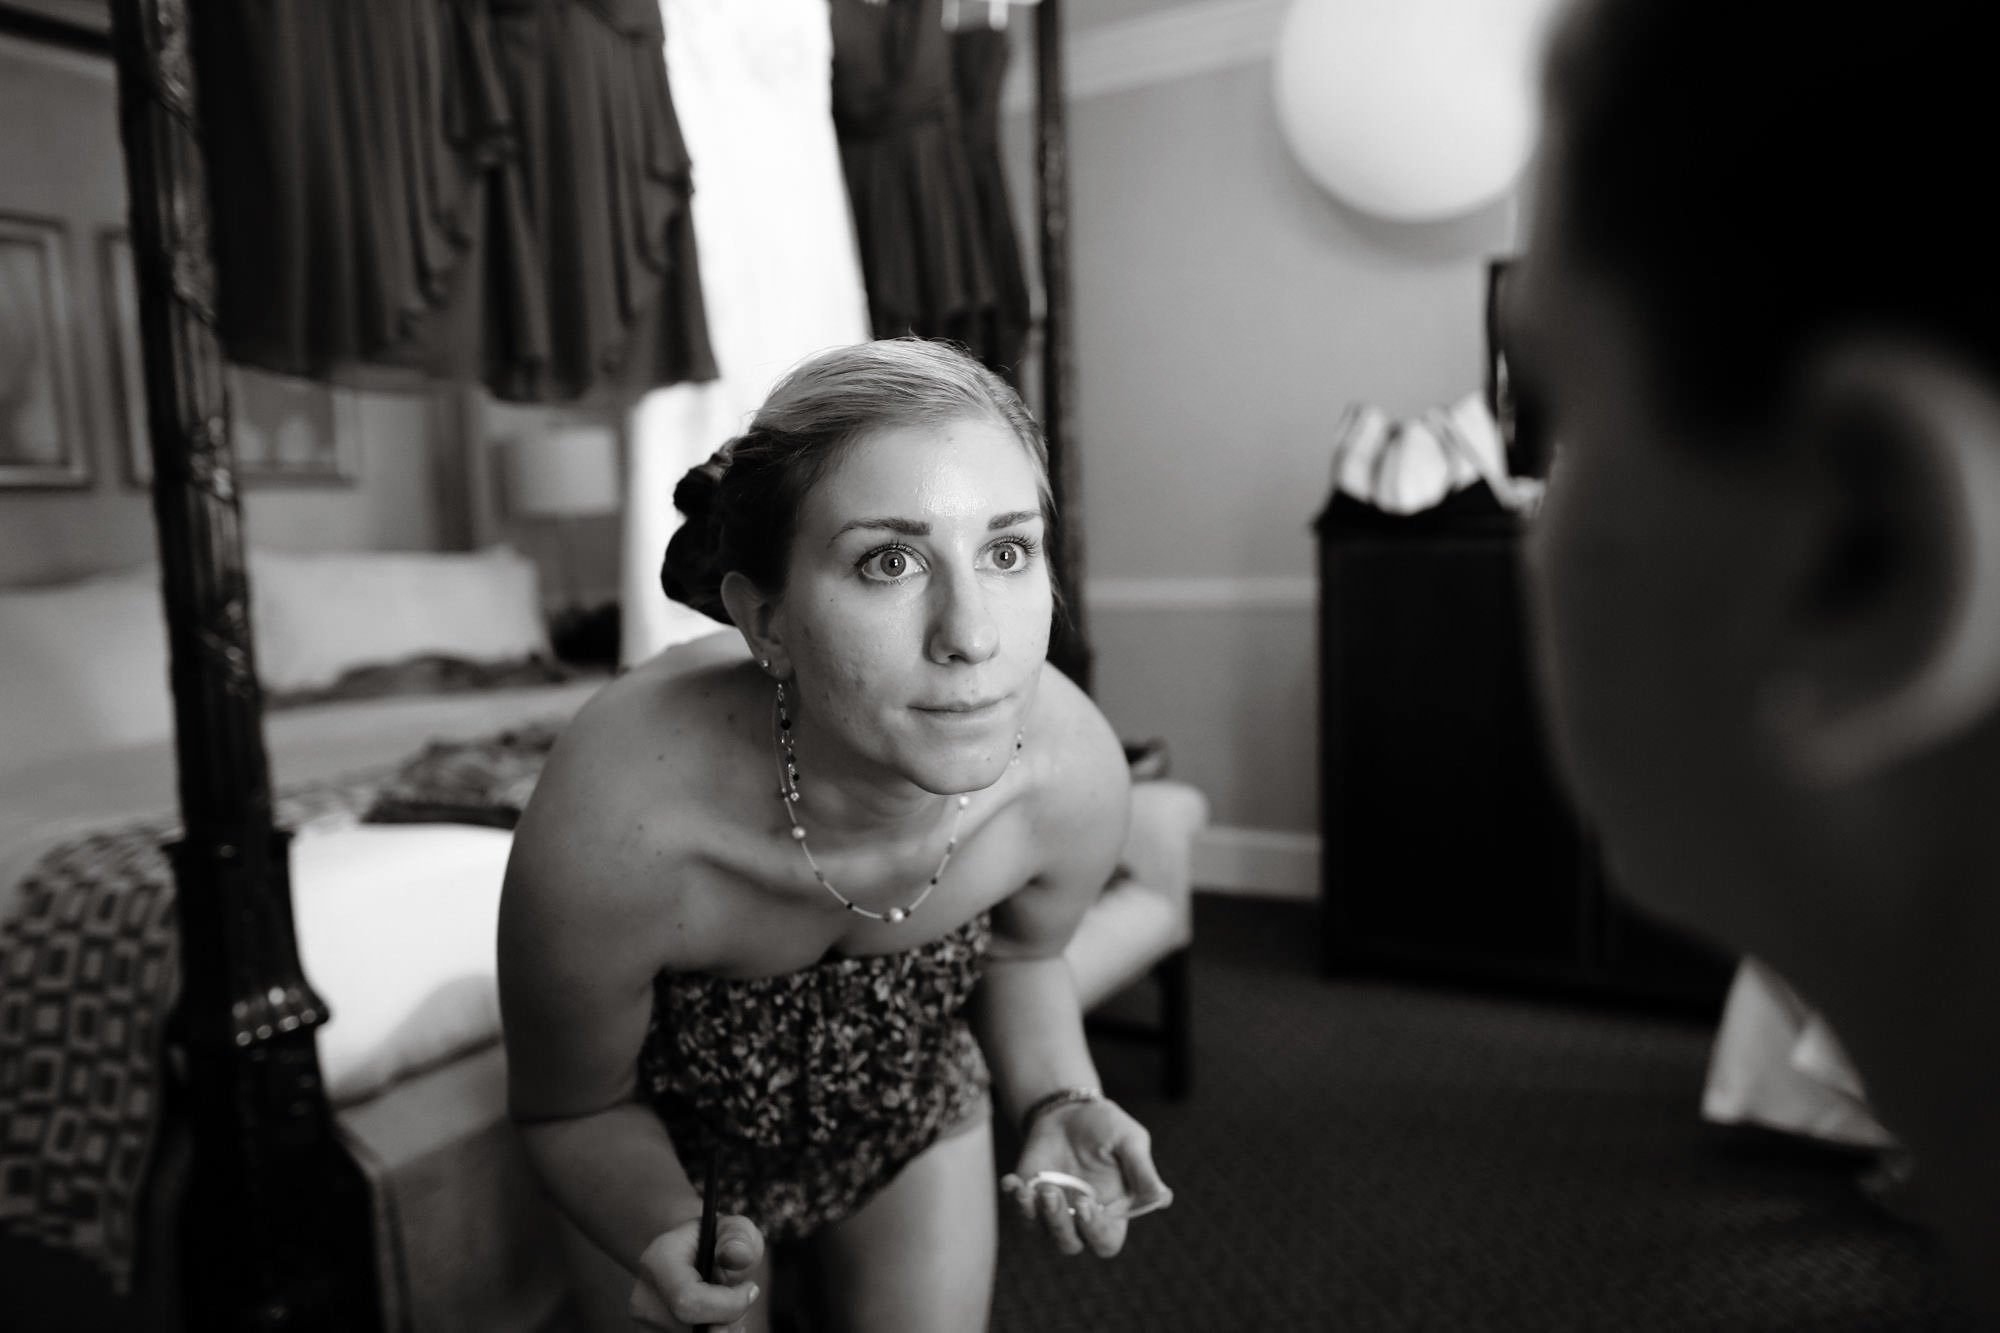 A bridesmaid puts on the bride's makeup prior to the wedding ceremony.